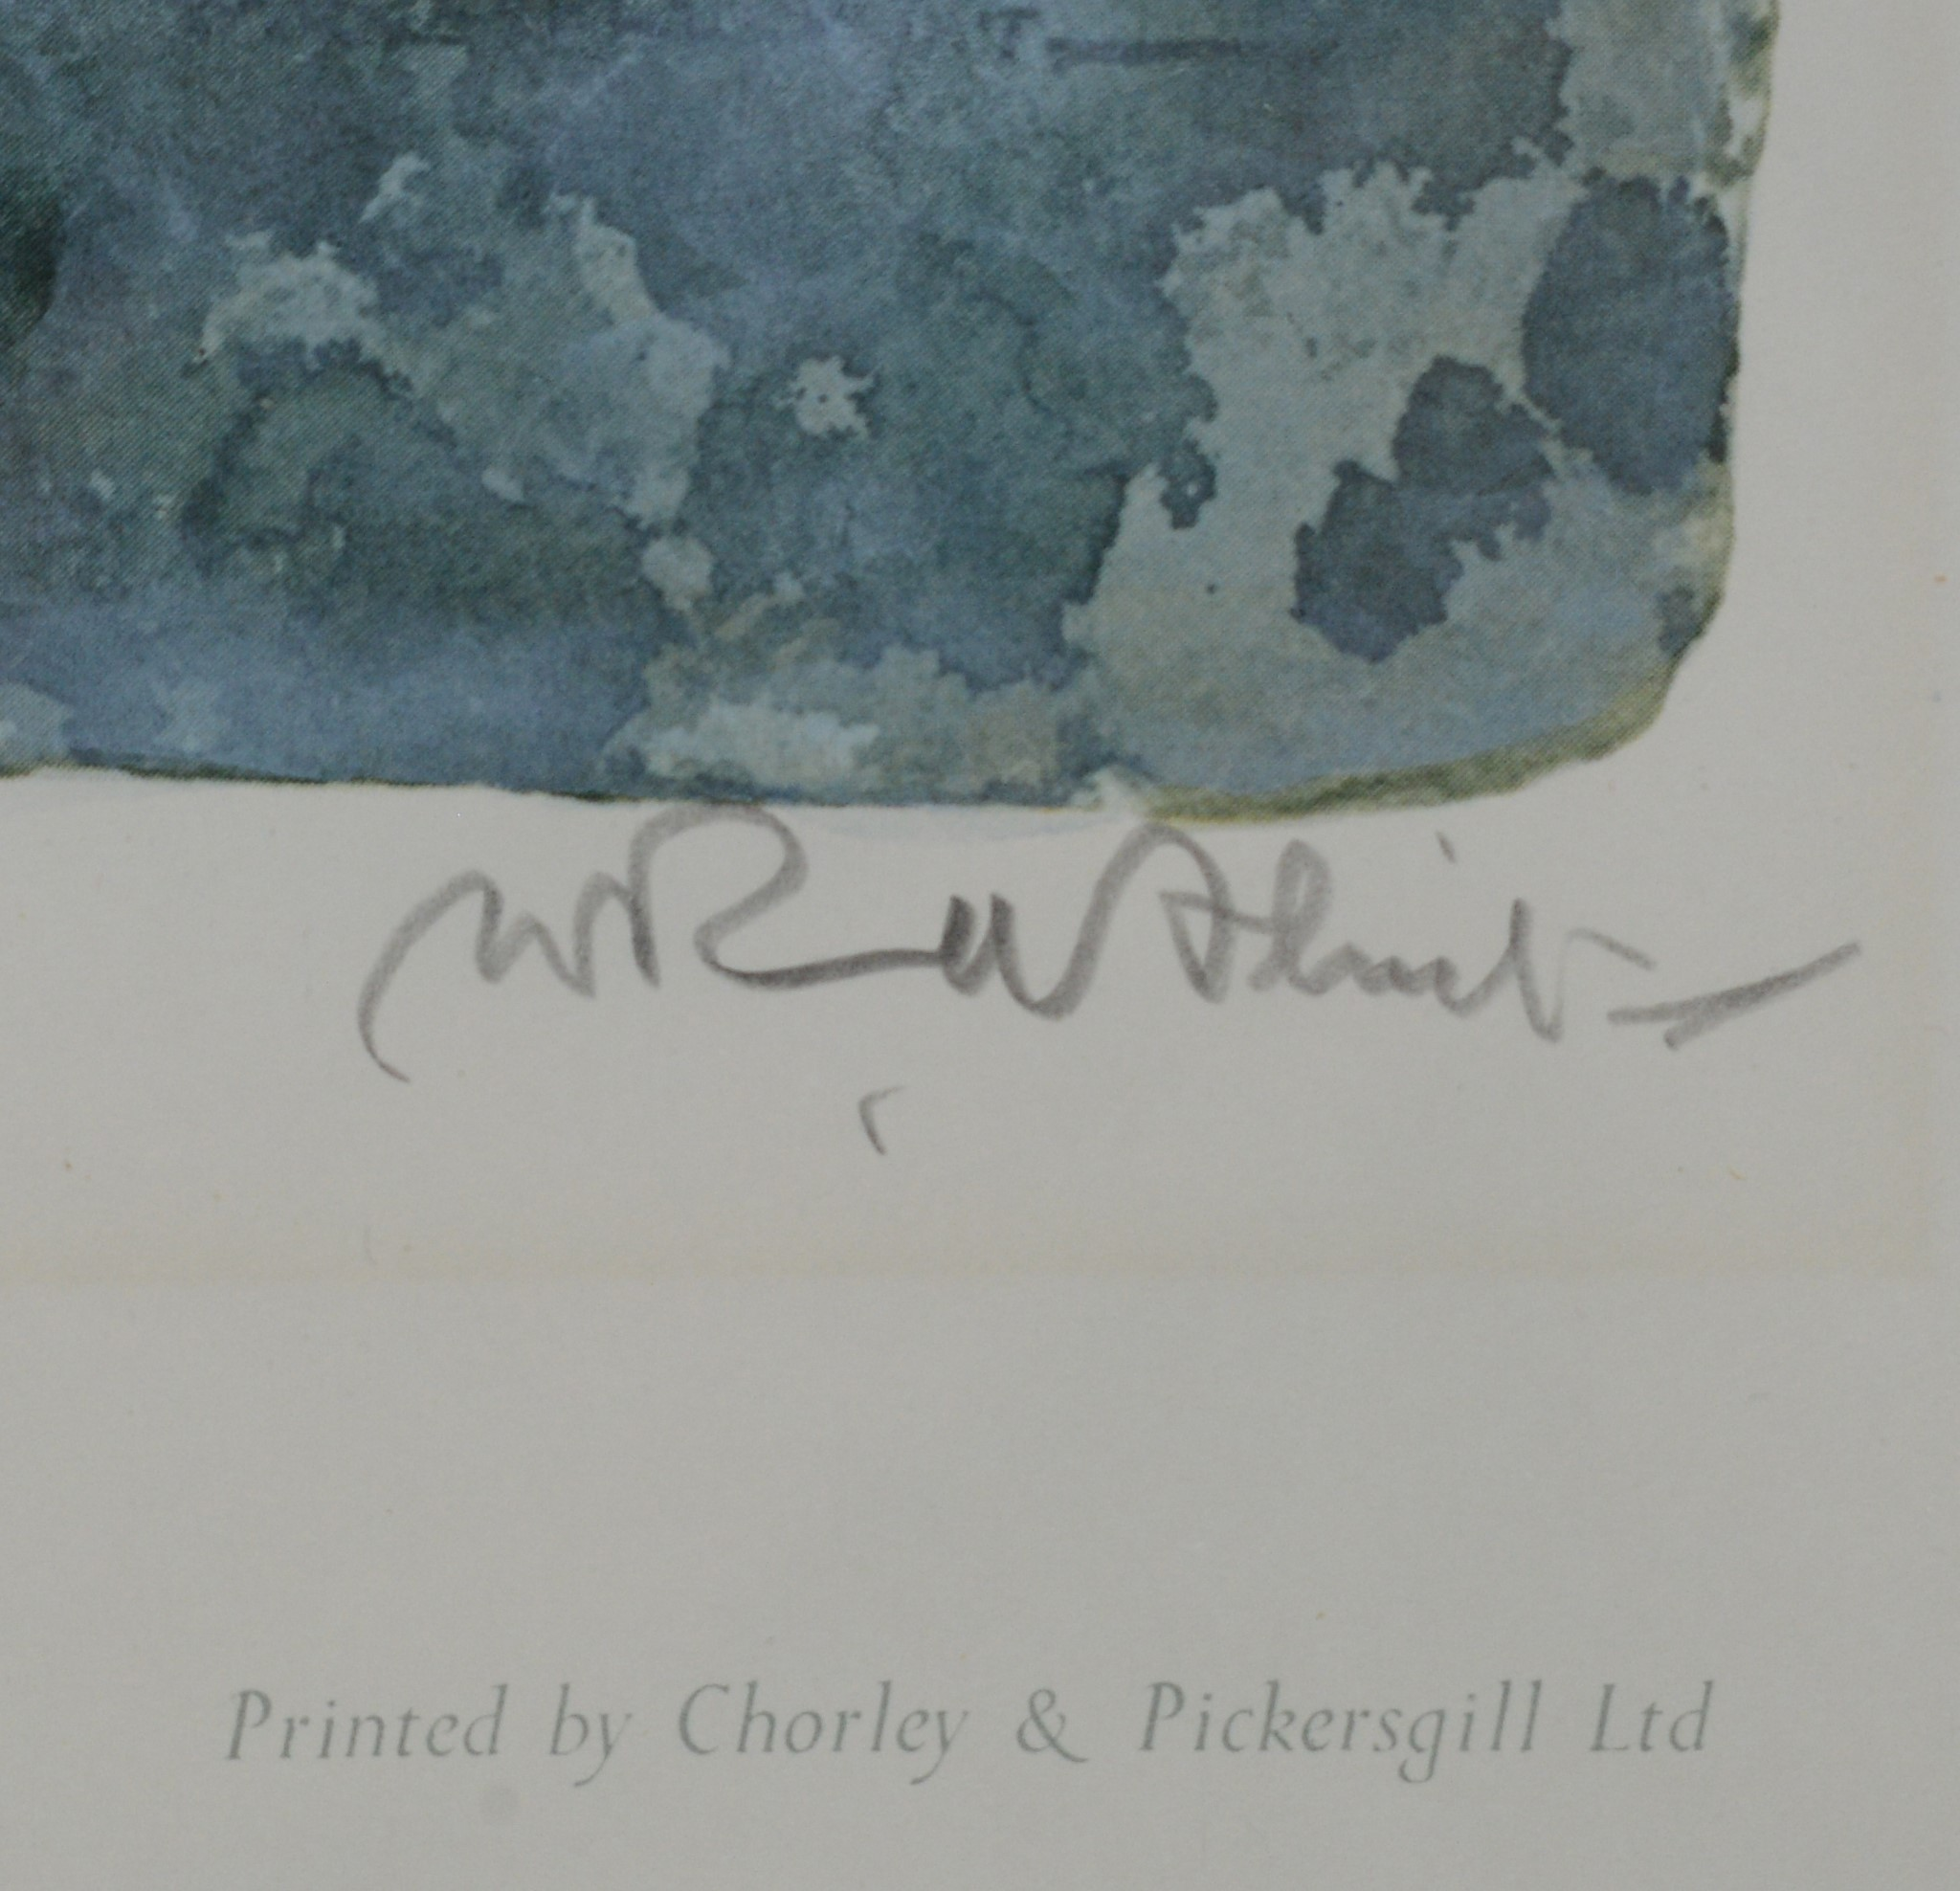 Sir William Russell Flint - limited edition. - Image 2 of 3